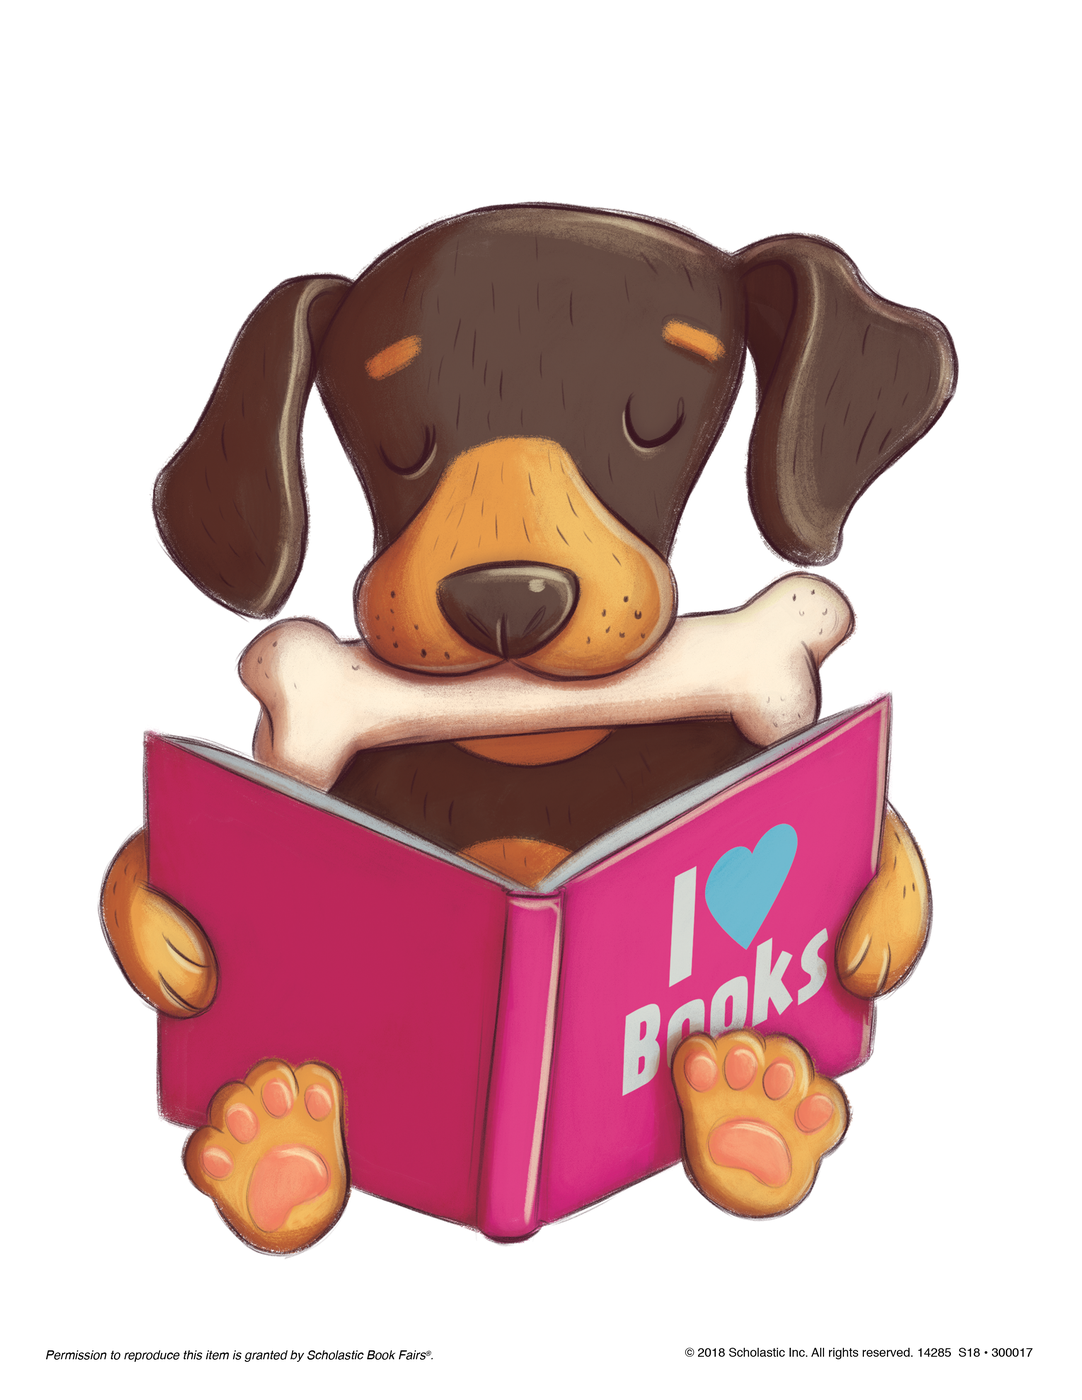 Scholastic book fair clipart clipart royalty free library PAWS for BOOKS — Scholastic Book Fair | Monroe Elementary School clipart royalty free library